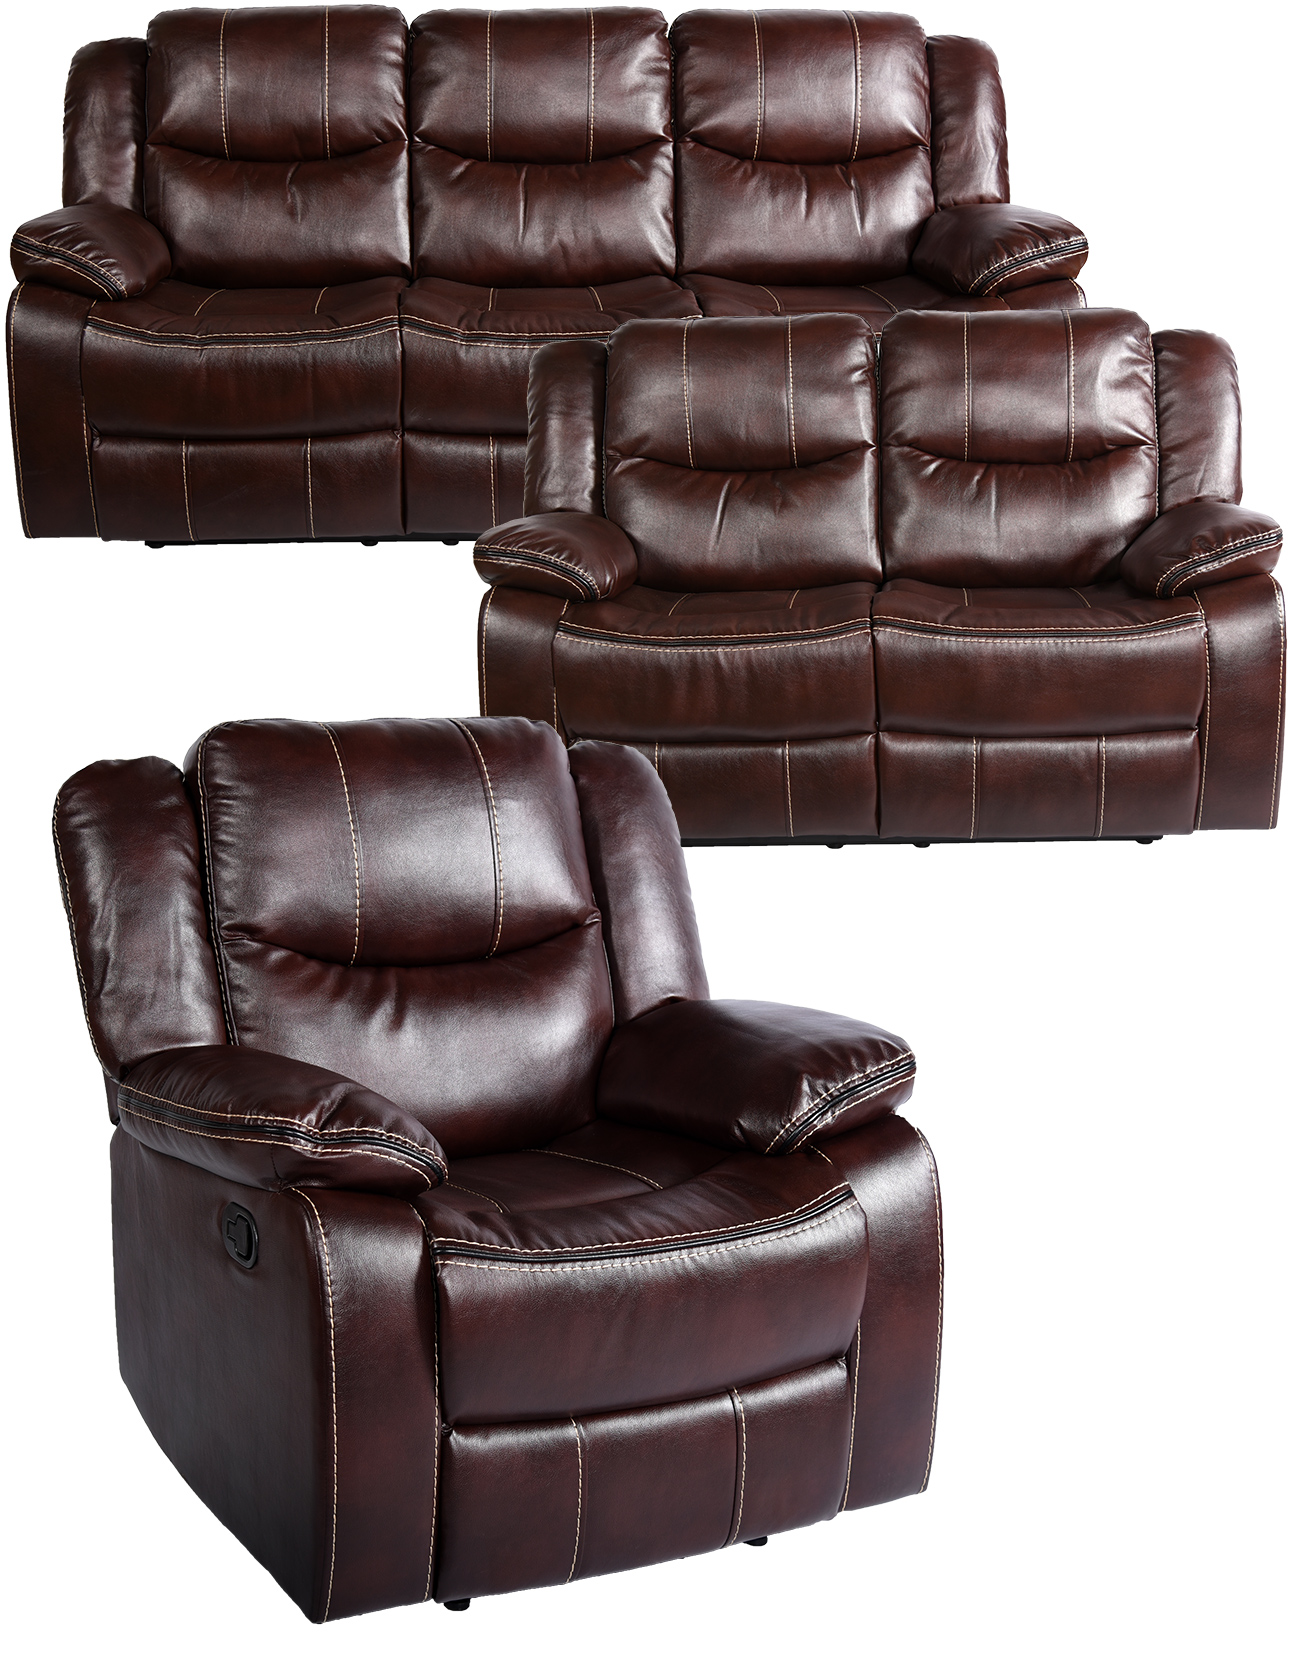 Recliner Lounge Zoy021 Recliner Lounge Suite Recliners For Sale